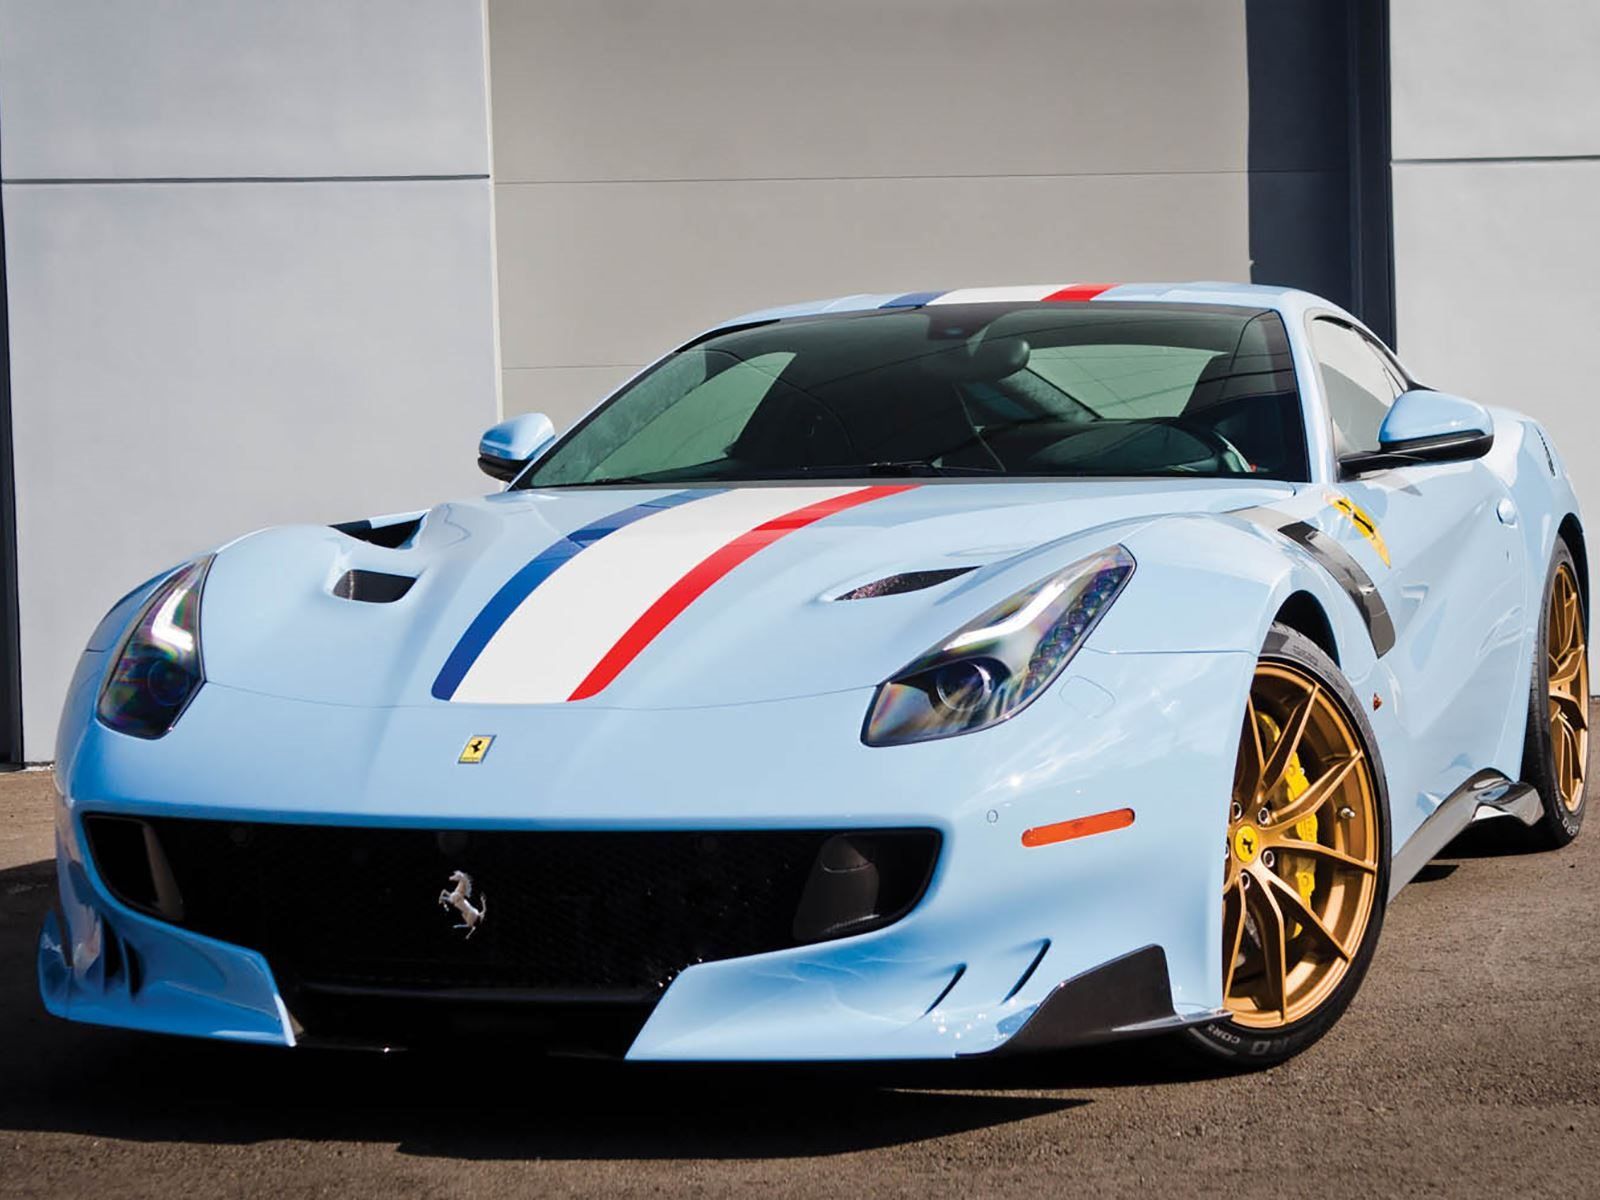 This Ferrari F12 tdf Features A Unique Livery That Lives Up